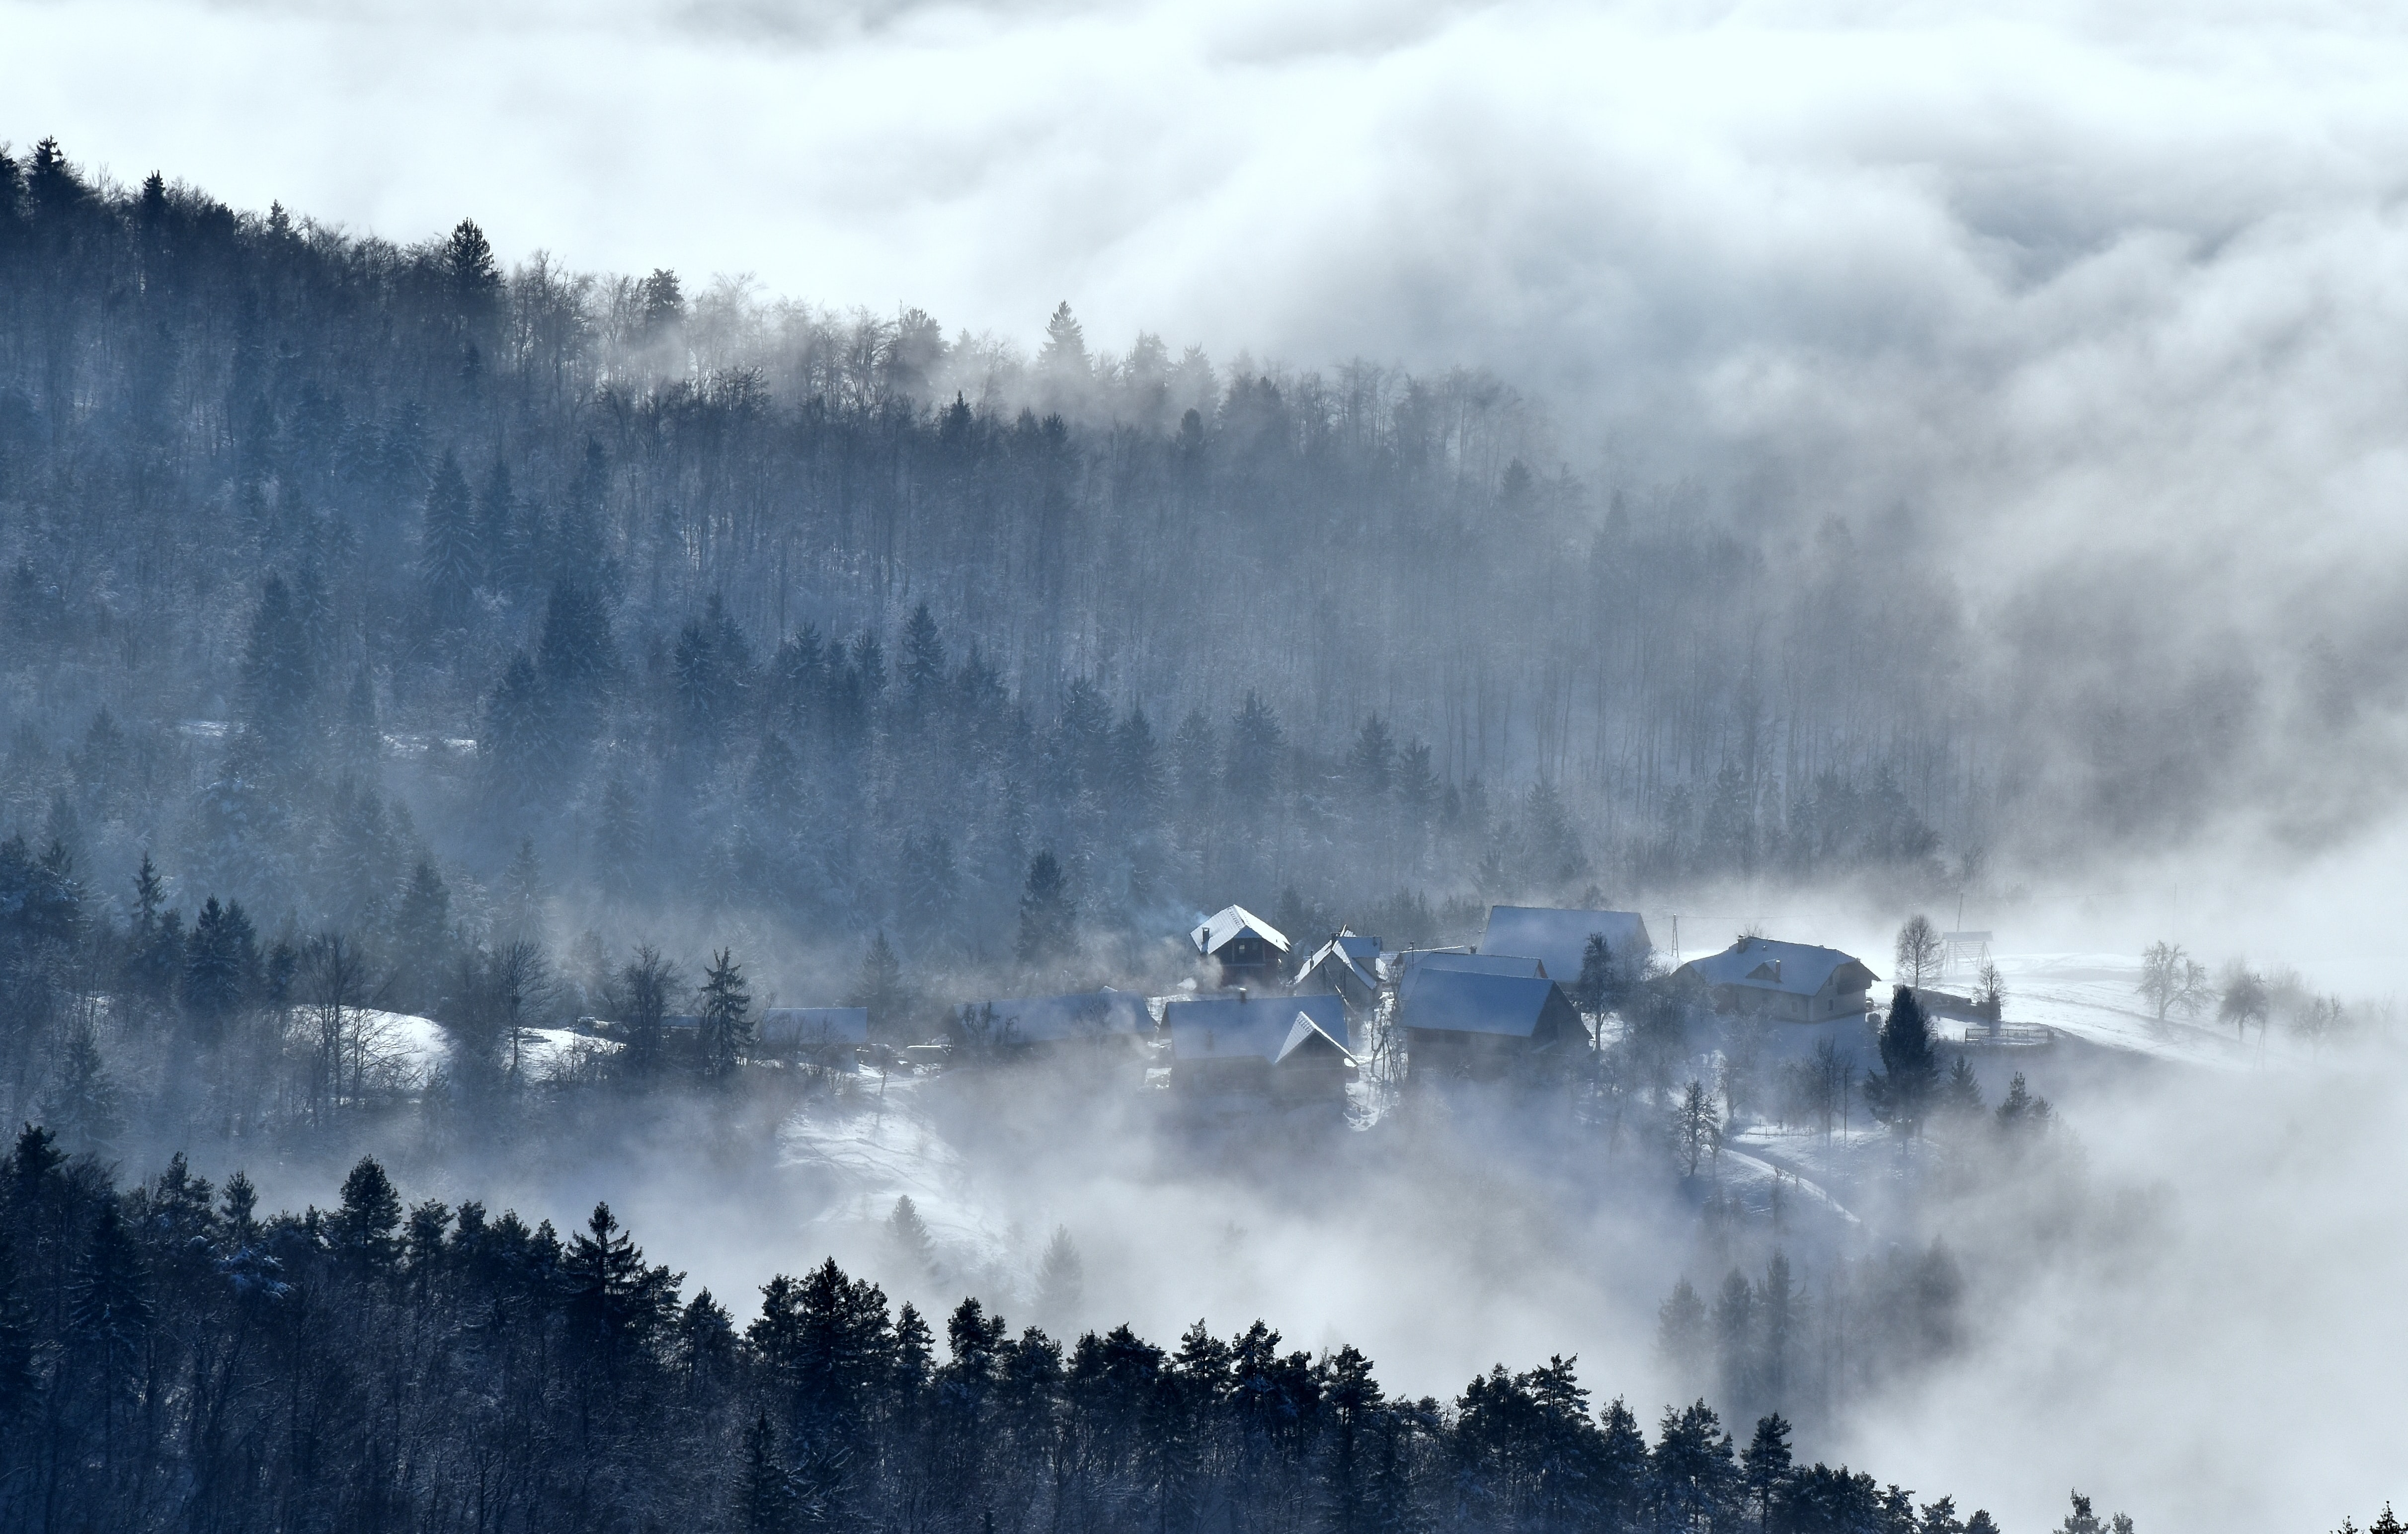 houses surrounded by trees and fog